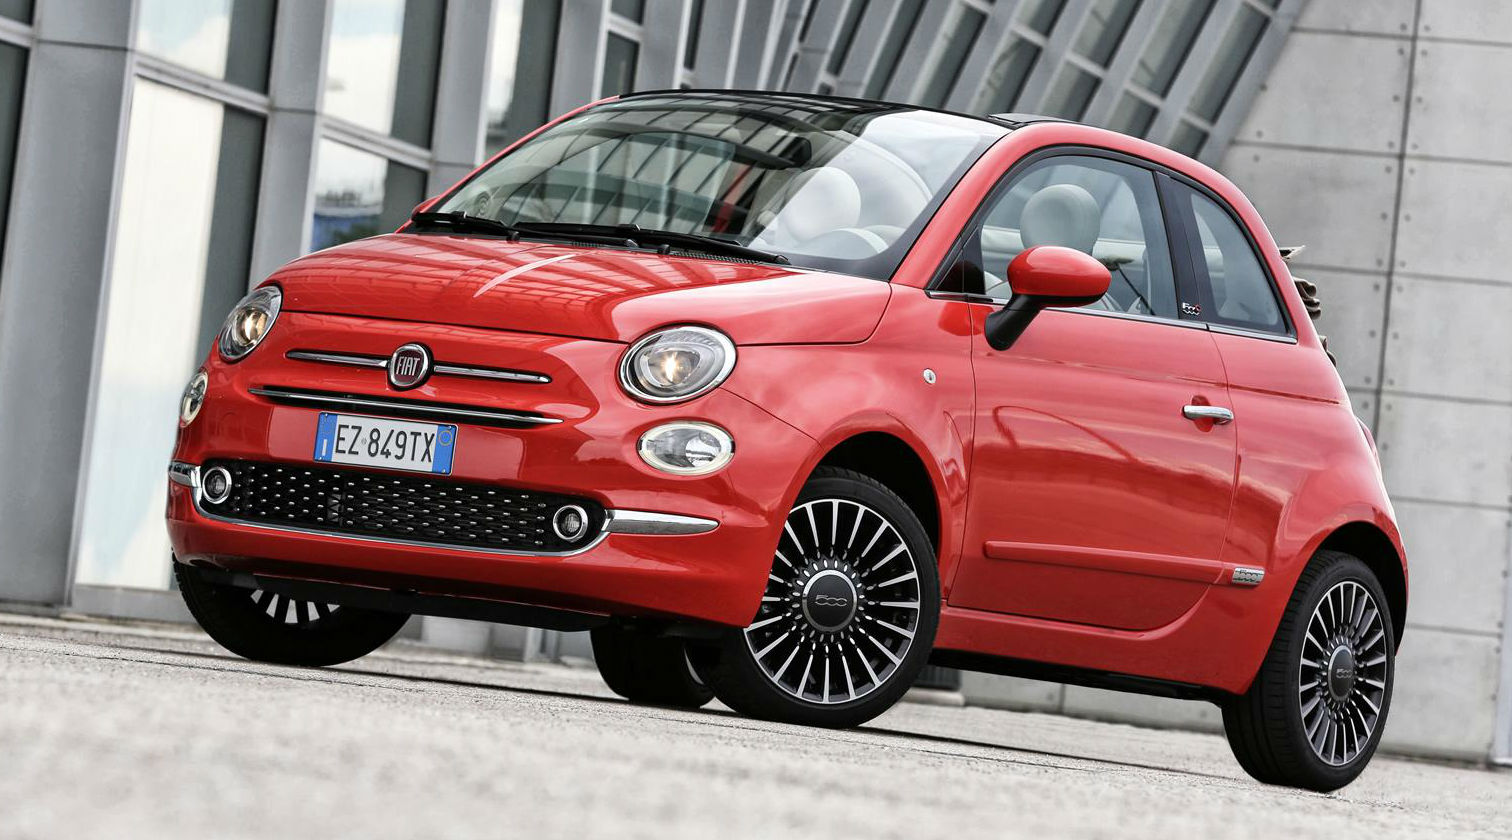 Fiat 500: 2015 Facelift Unveiled With New Interior Tech